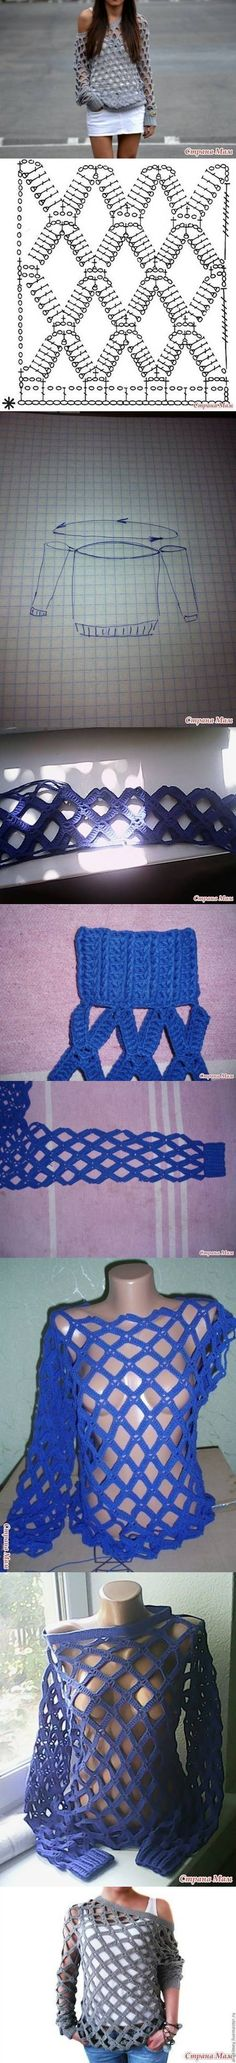 DIY Crochet Blouse